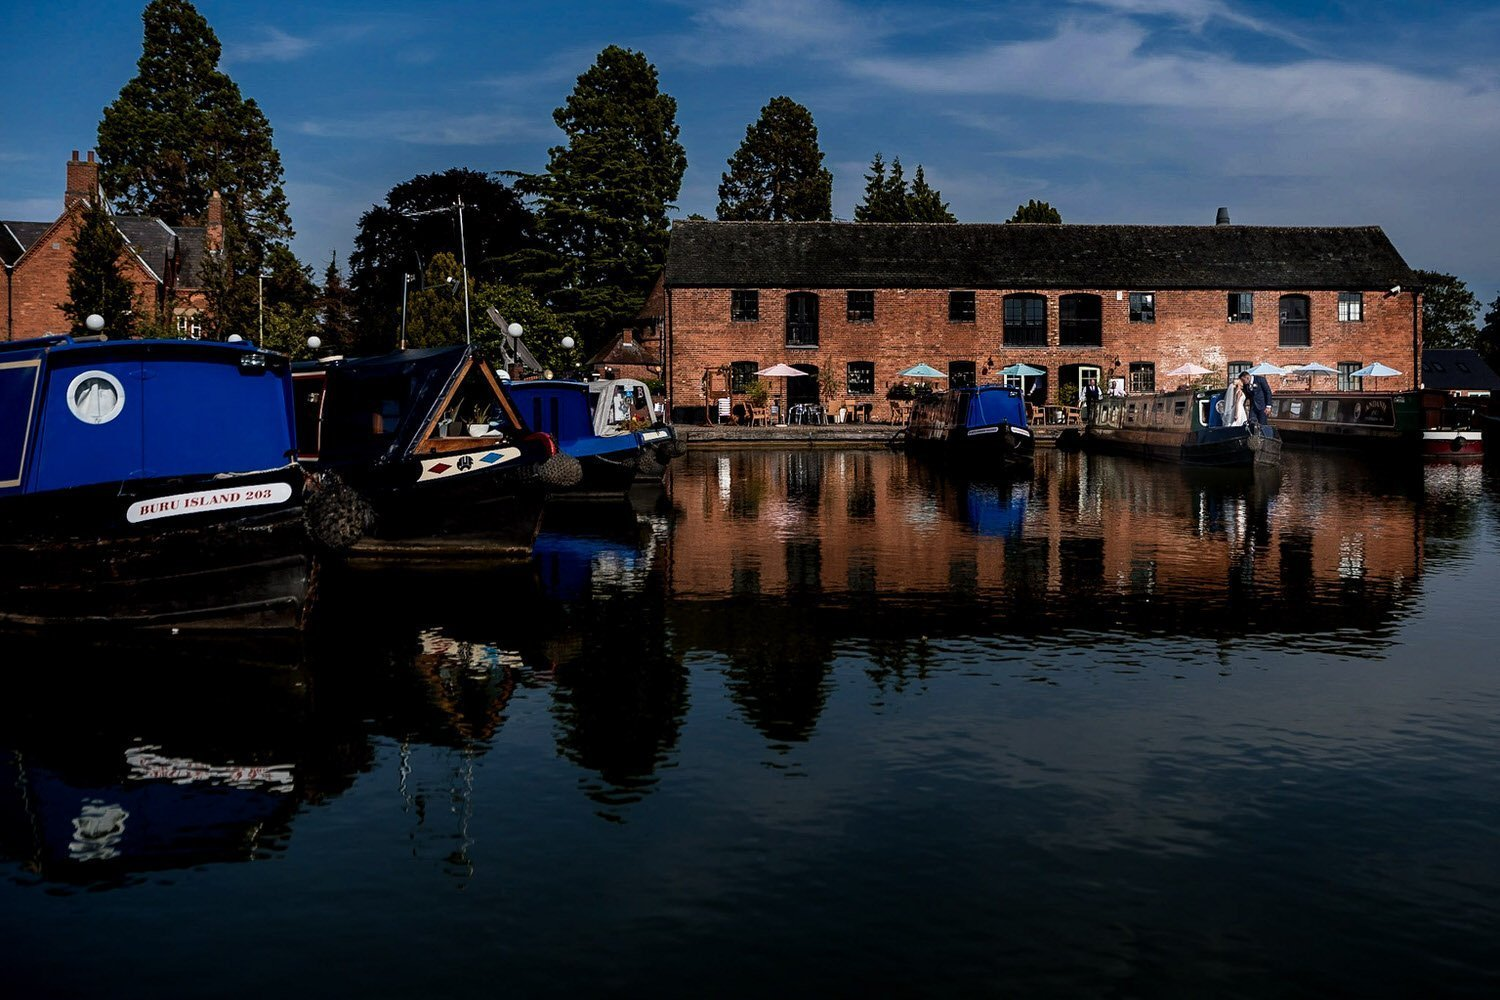 The Waterfront Market Harborough Weddings Photography groom and bride on a canal barge with the whole canal basin in view